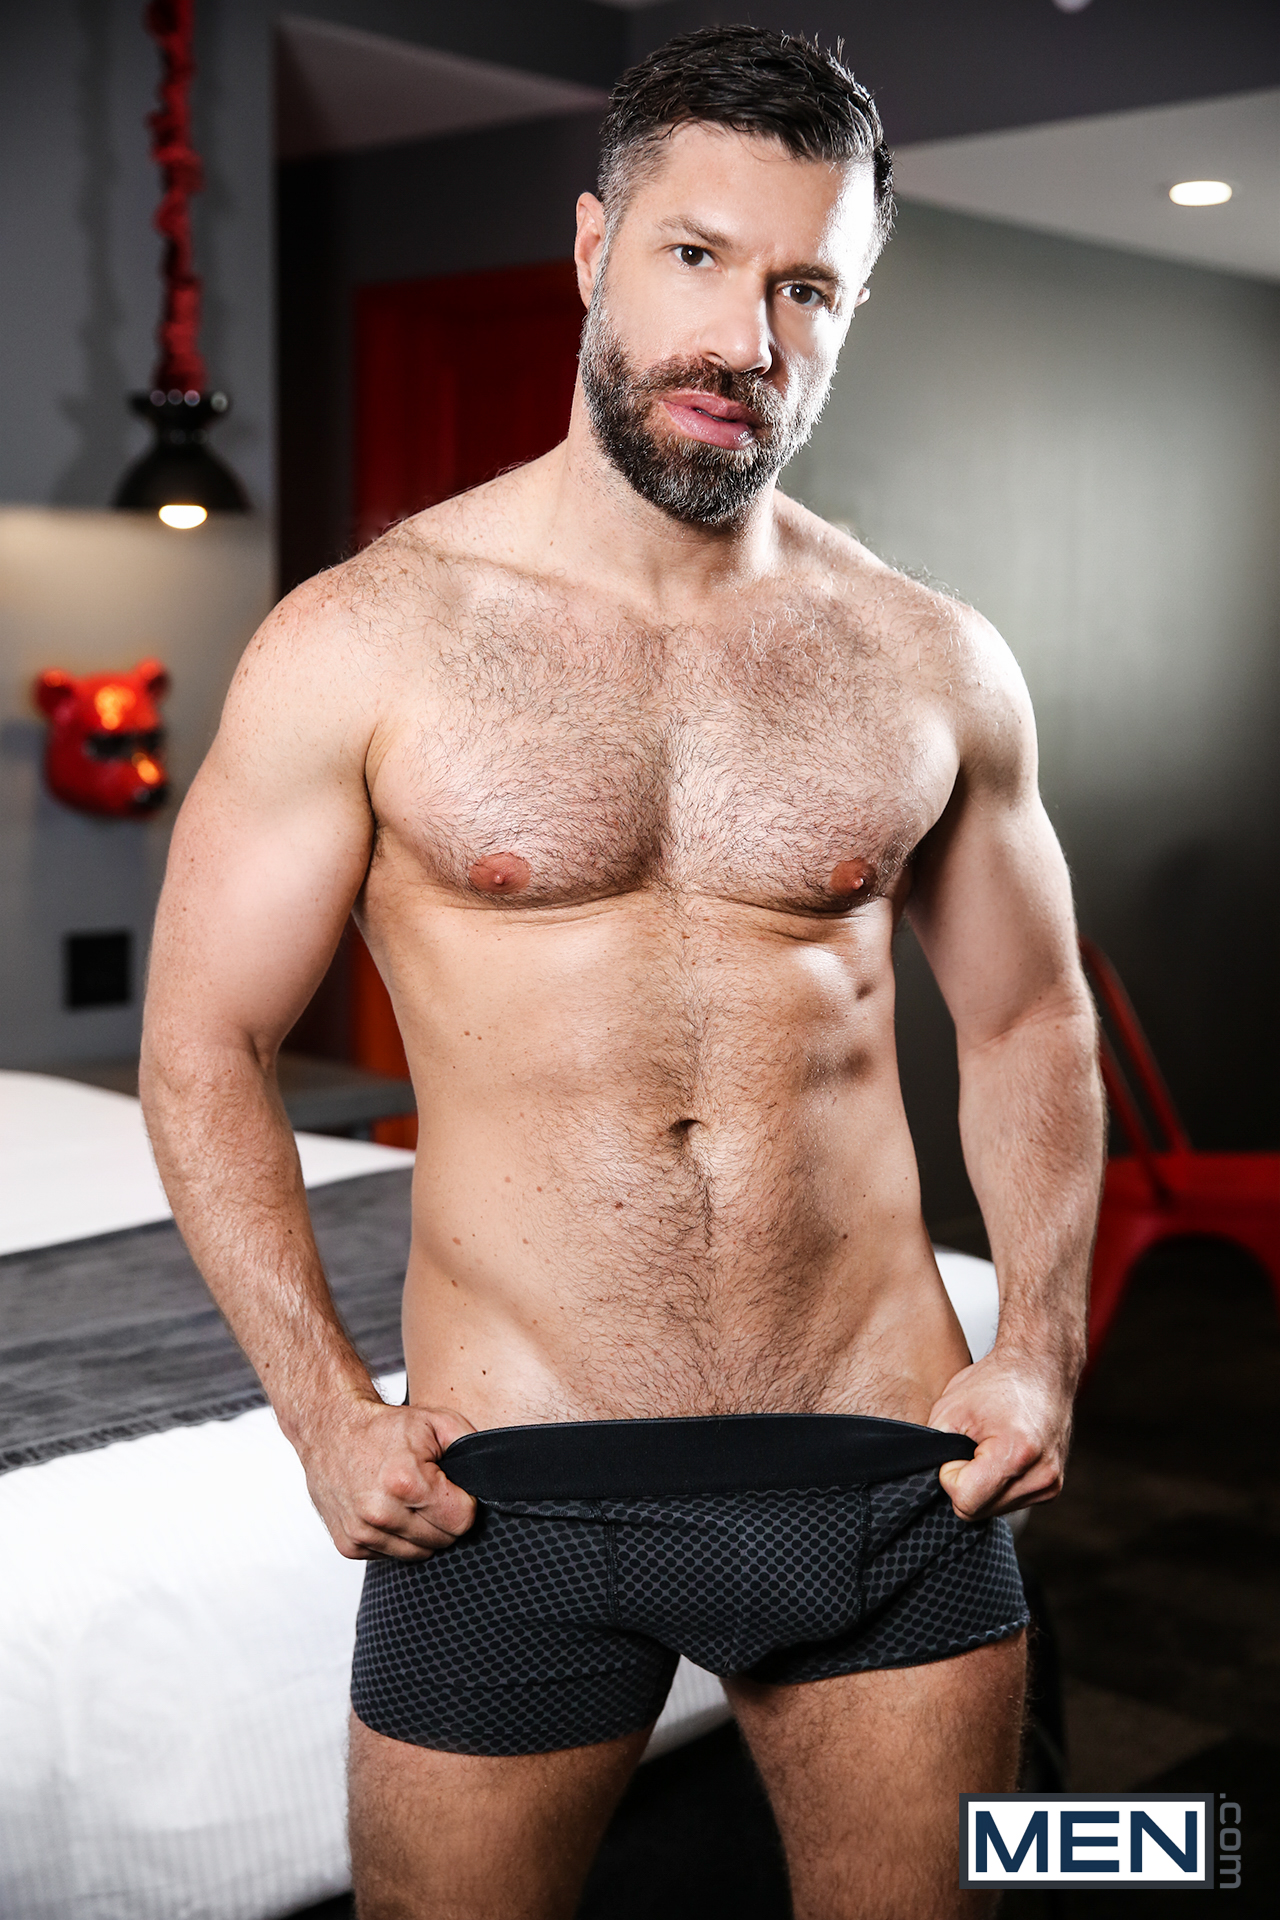 Gay male sites